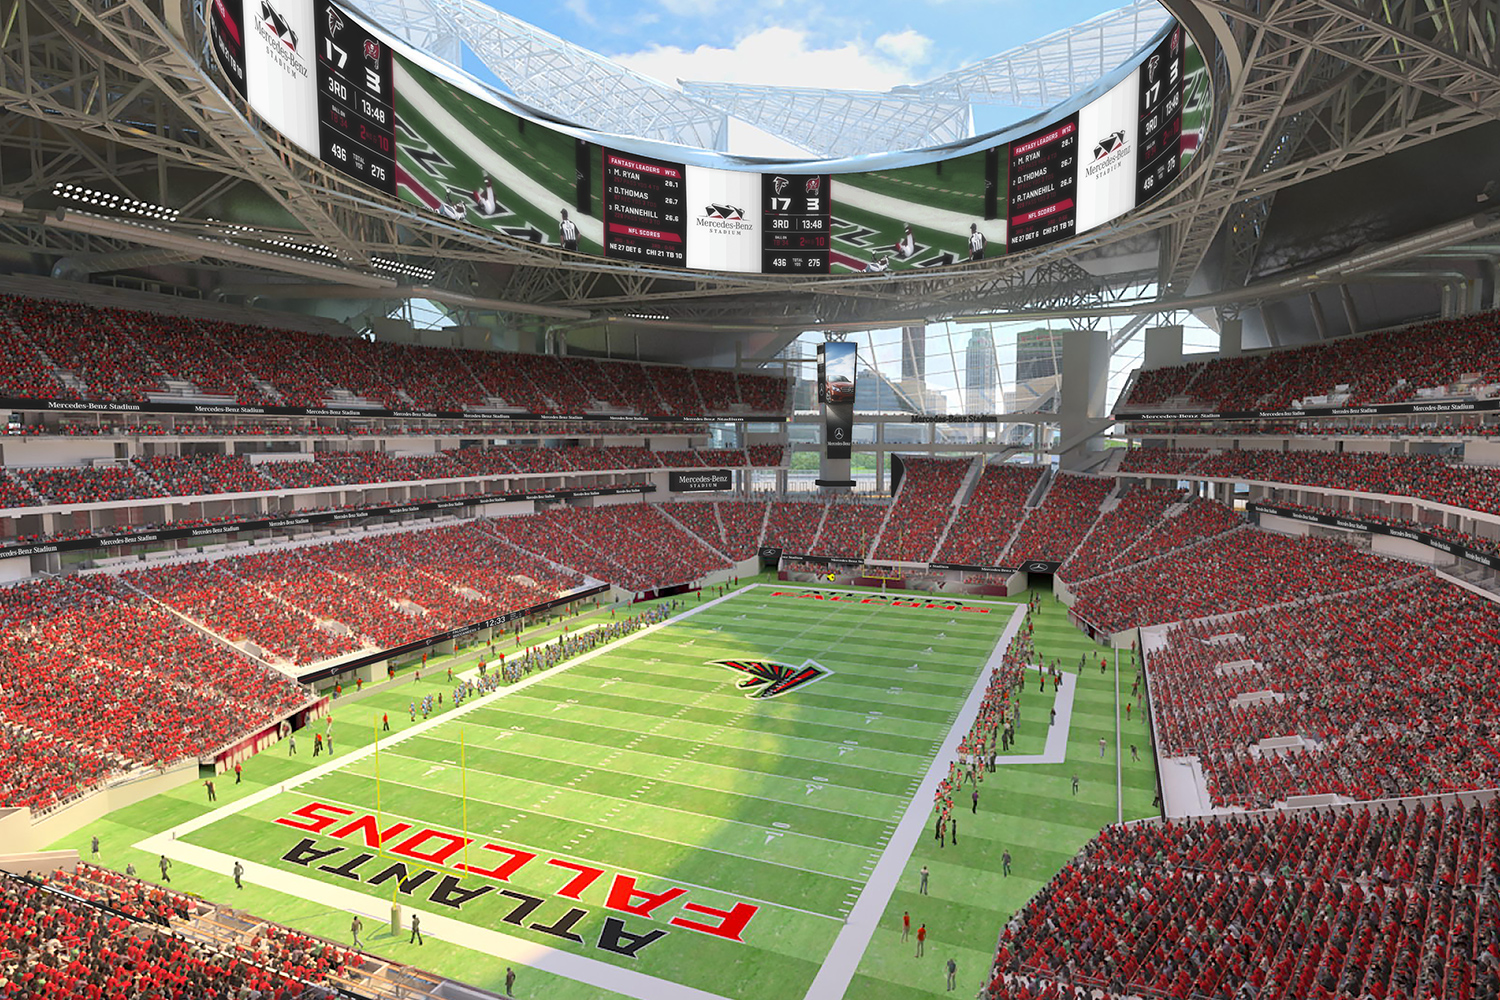 Mercedes benz stadium burohappold engineering for Estadio mercedes benz